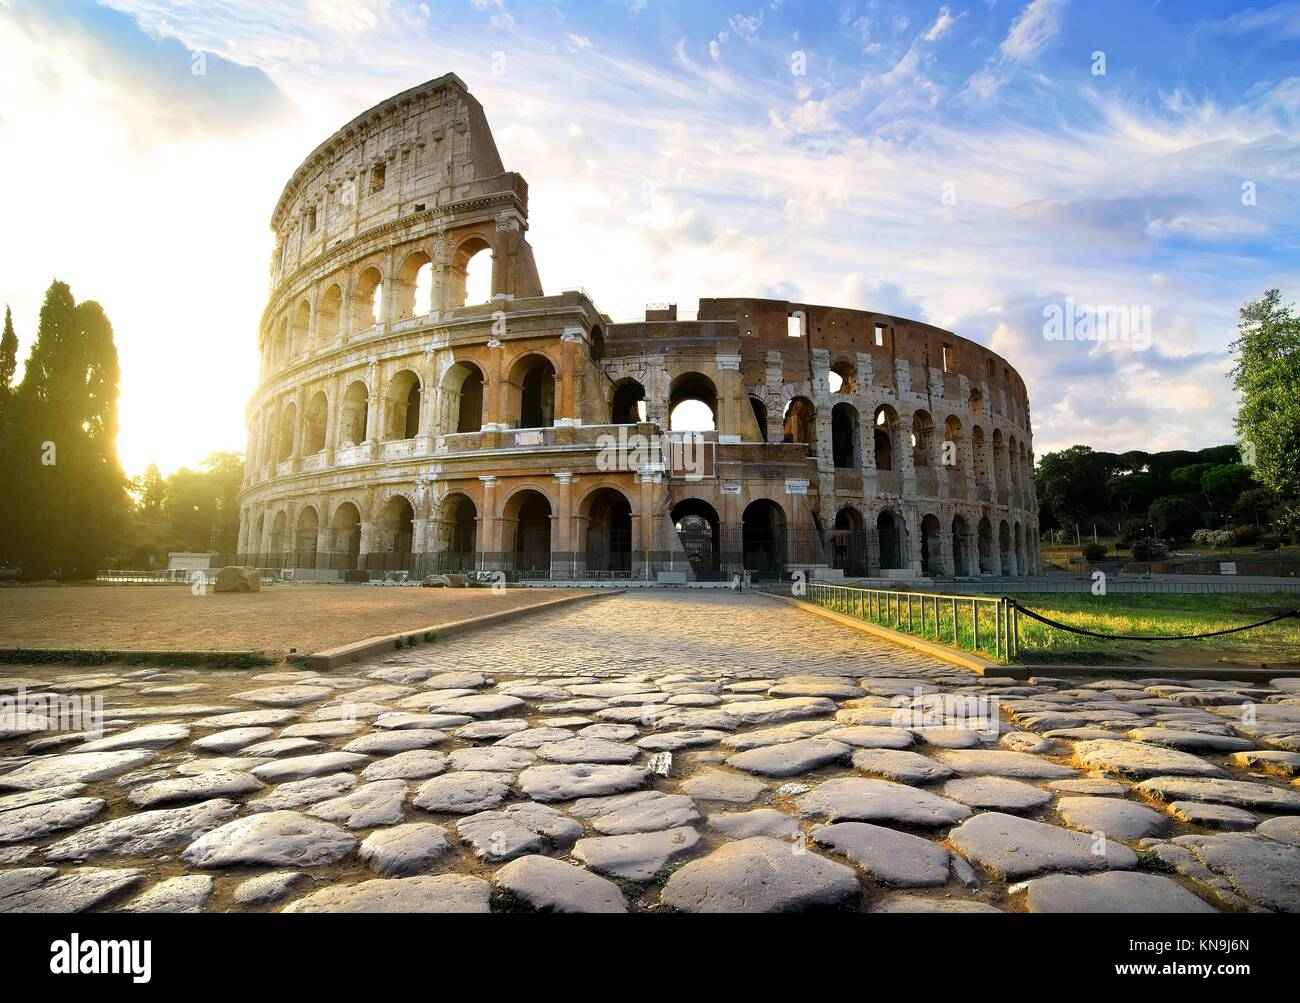 Road to Colosseum in calm sunny morning. - Stock Image